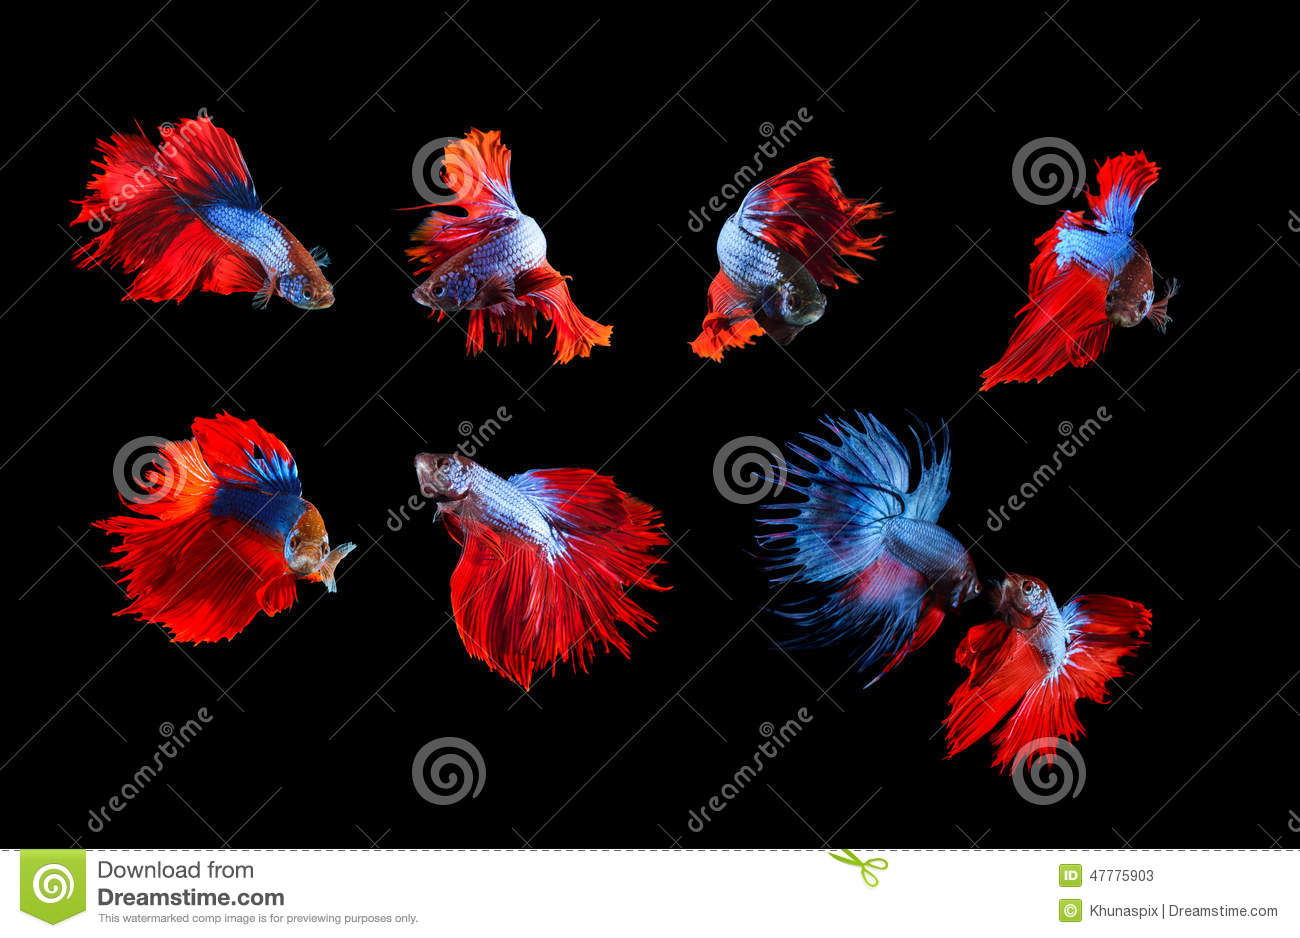 Fighter Fish Hd Wallpaper Download Mixed Of Blue And Red Siamese Fighting Fish Betta Full